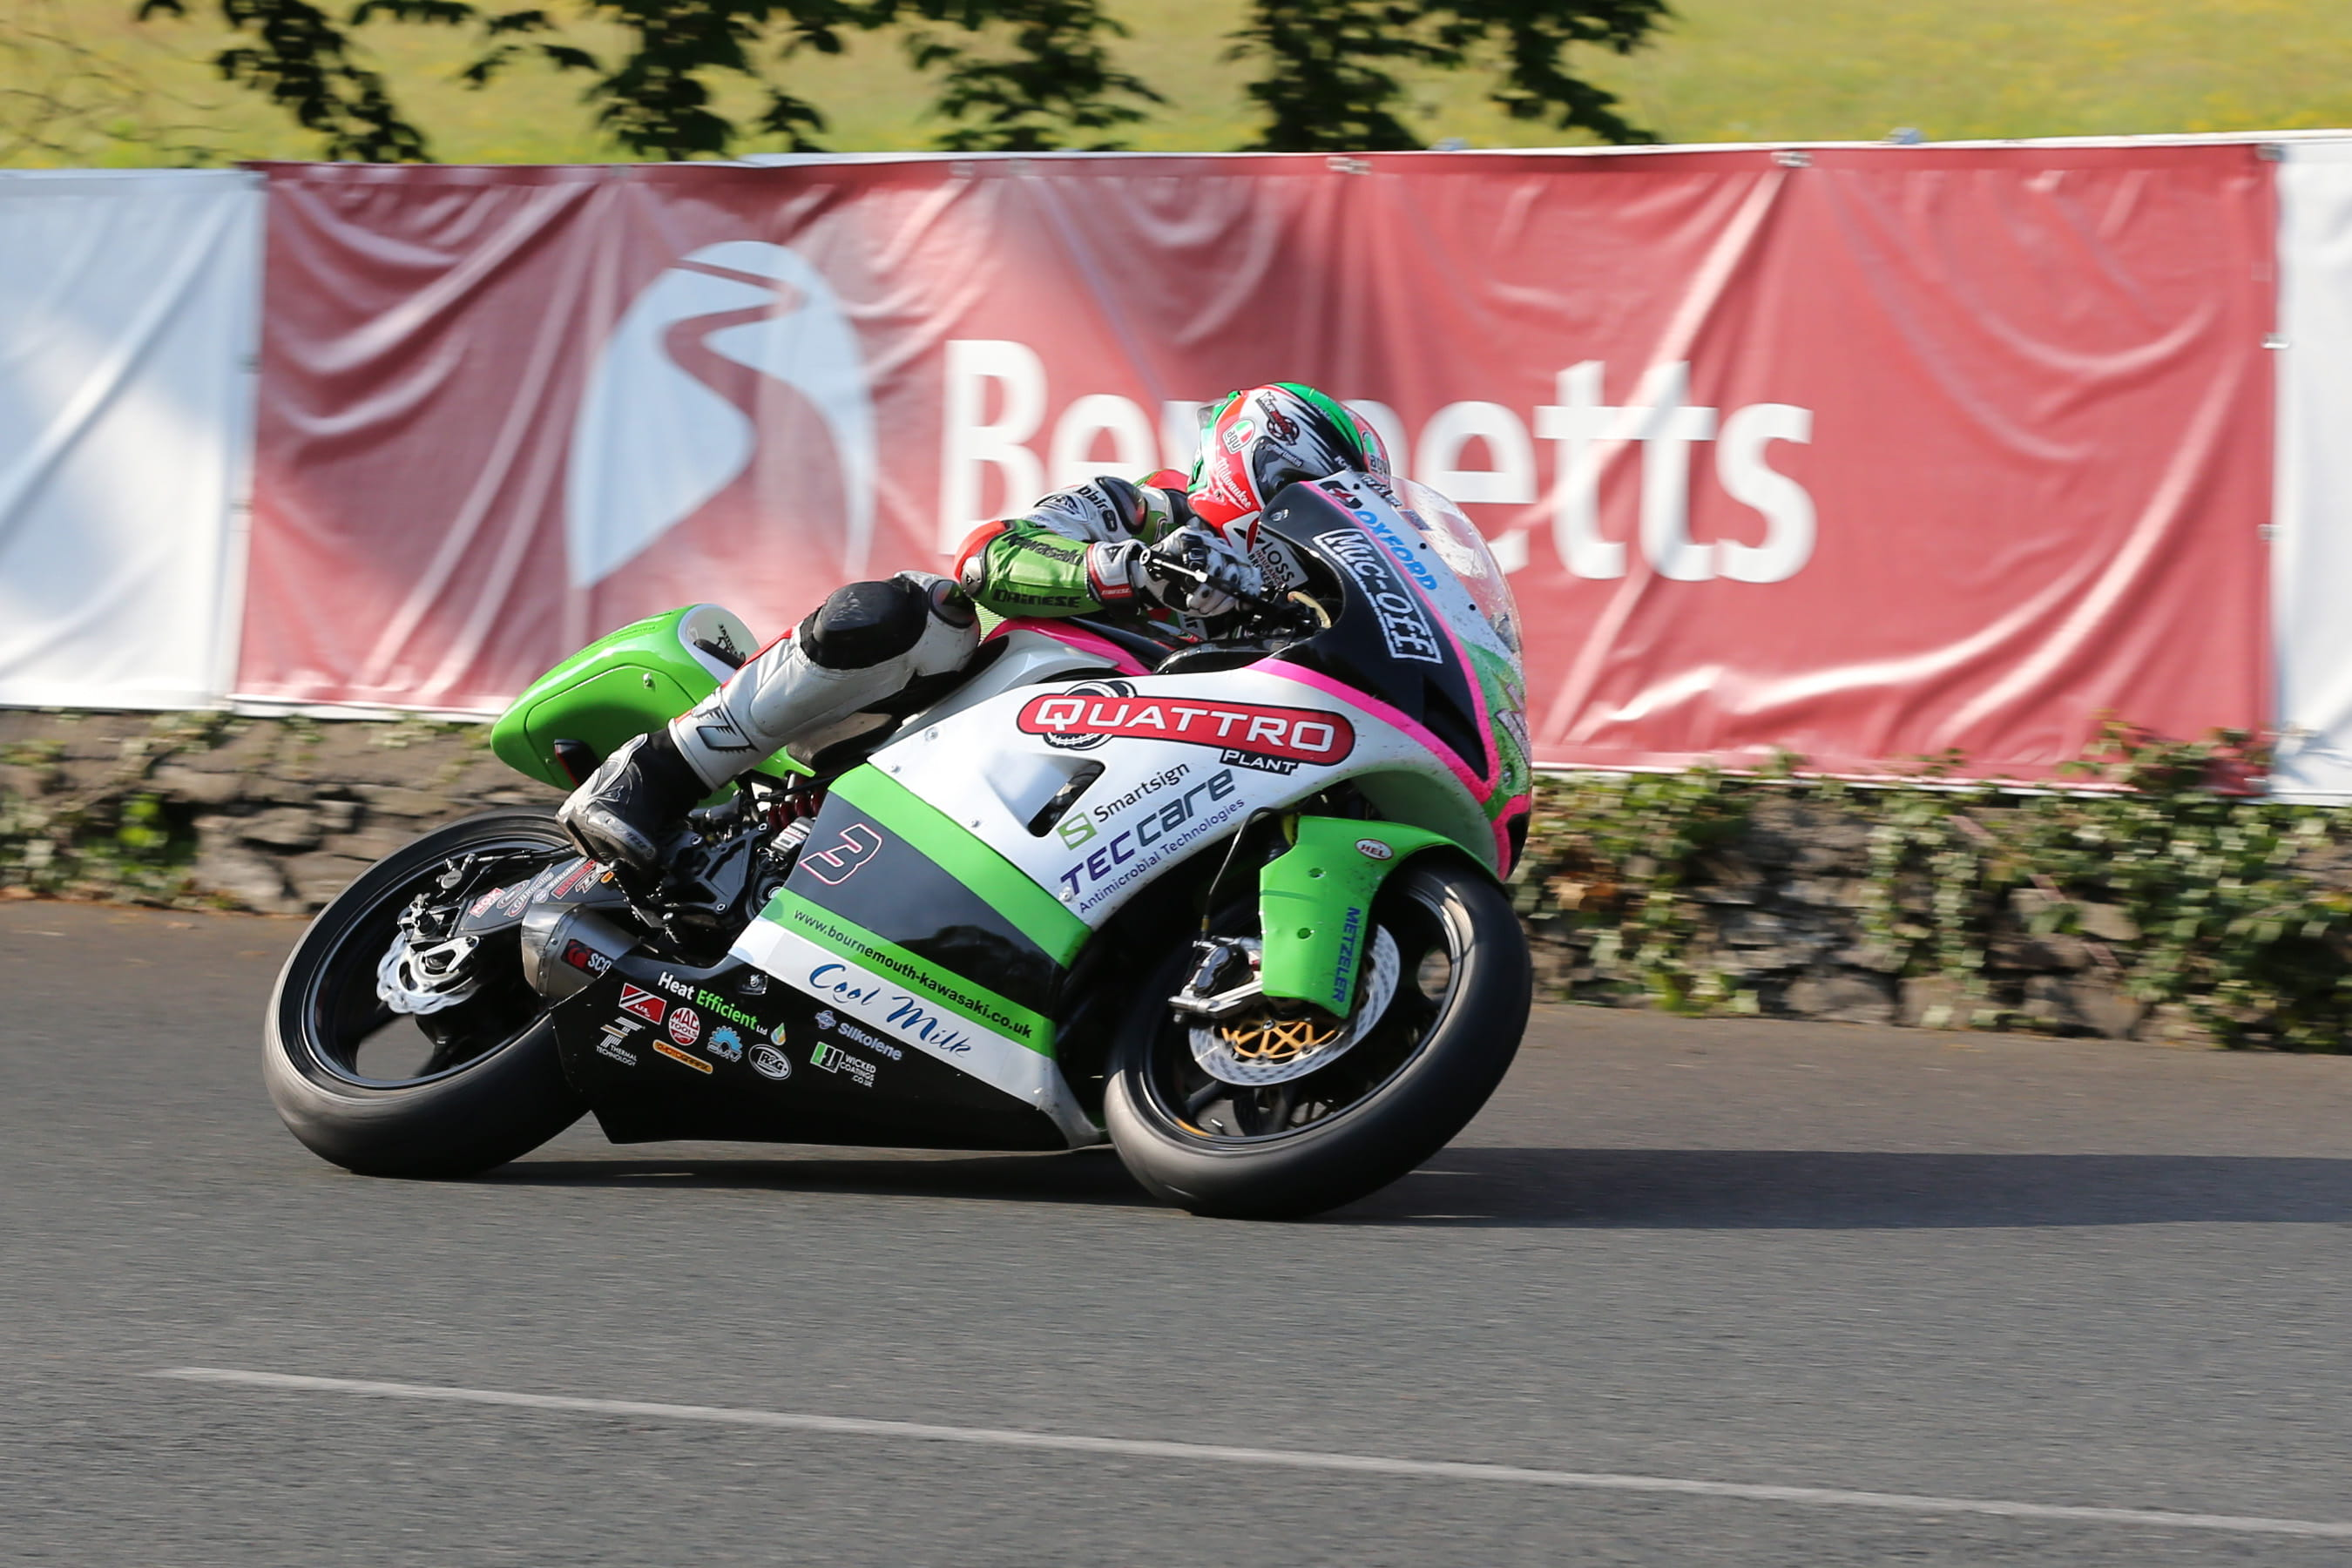 Hillier led early on